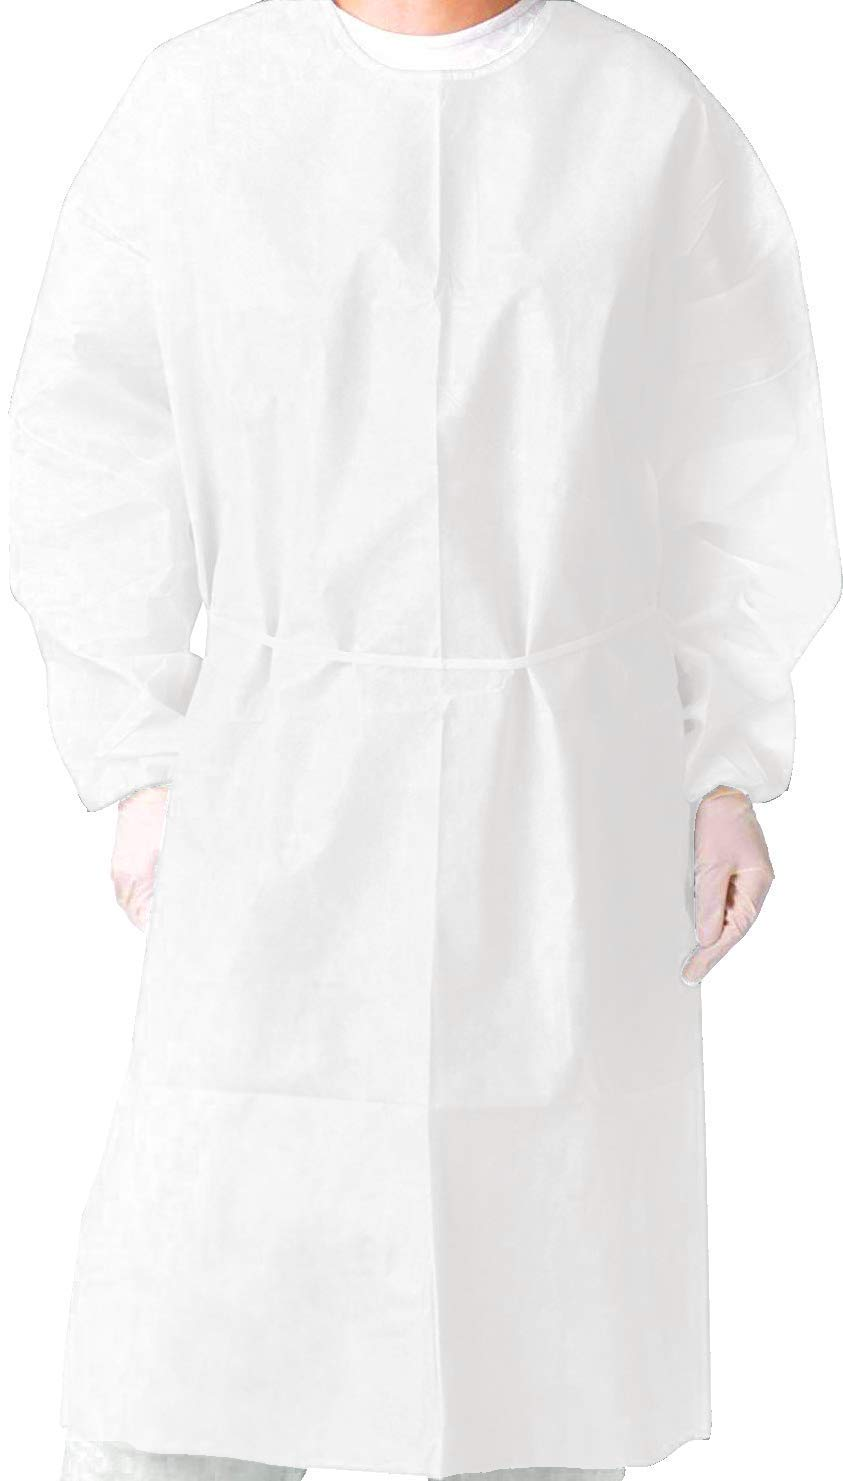 Isolation Gown with Elastic Cuff -Disposable Non-Woven, Splash Resistant, one size fits all (White- Case/50 pcs)